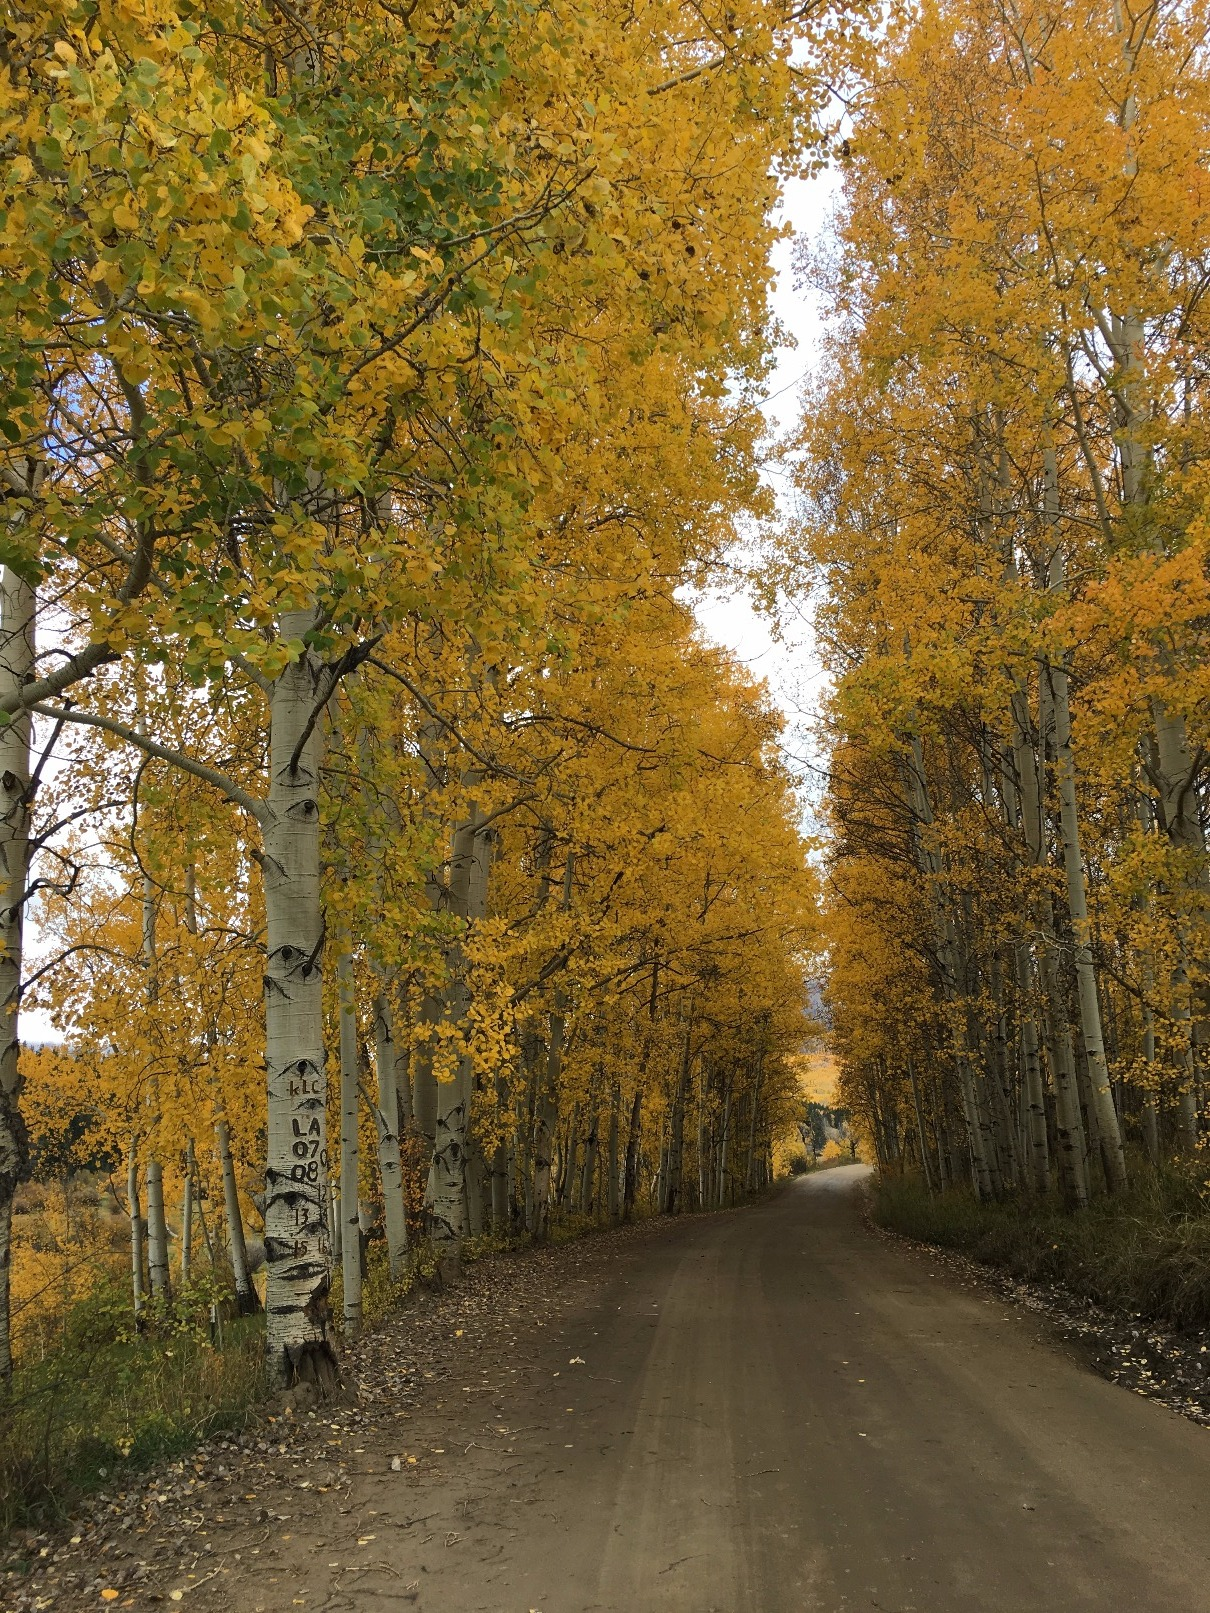 Driving Gunnison County Road 730 to Ohio Pass. This hidden gem is Not as crowded as nearby kebler pass.